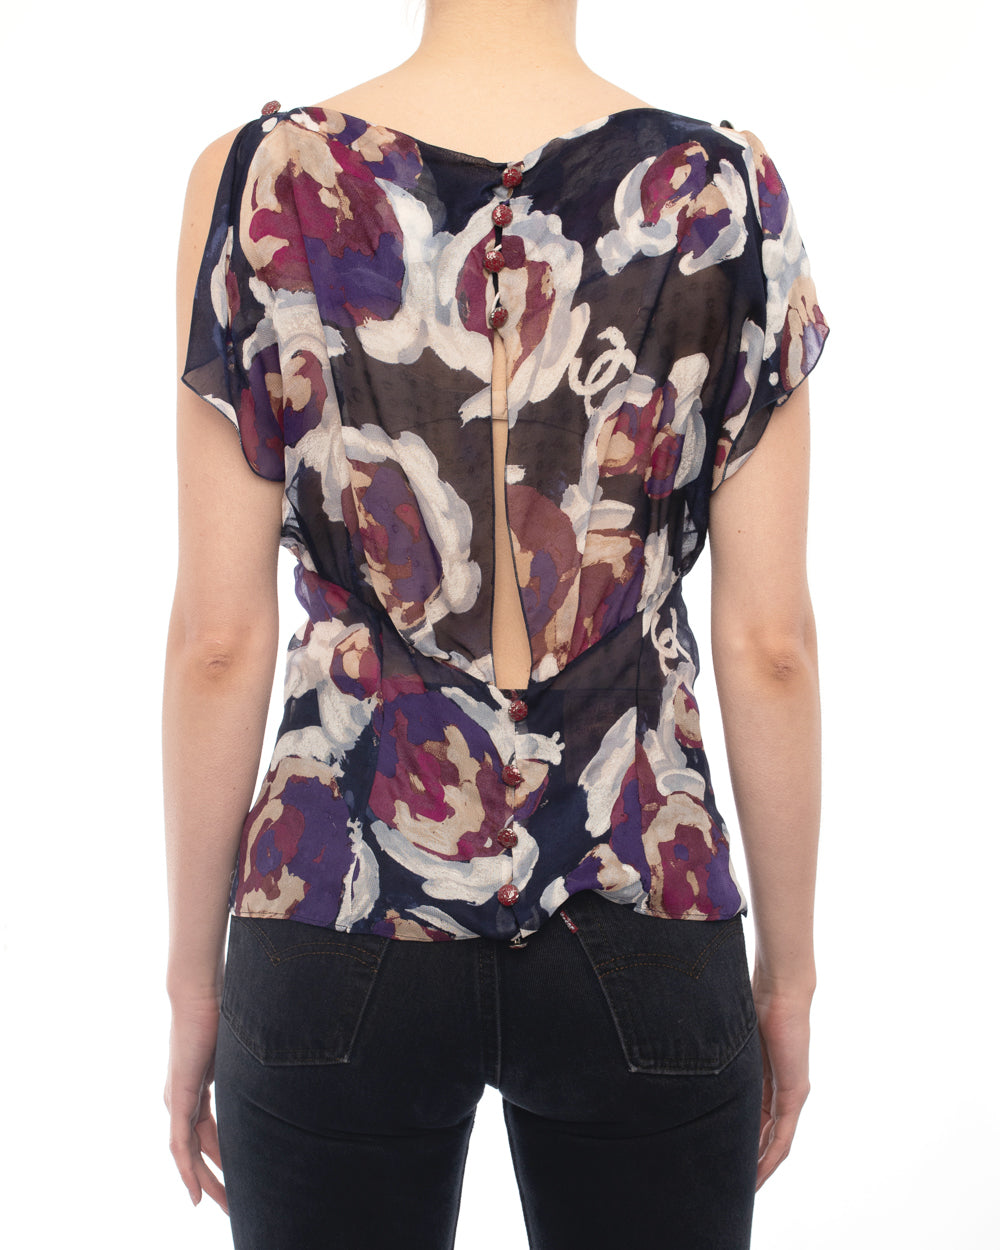 Chanel 2010 Resort Runway Sheer Purple Silk Floral CC Top - S